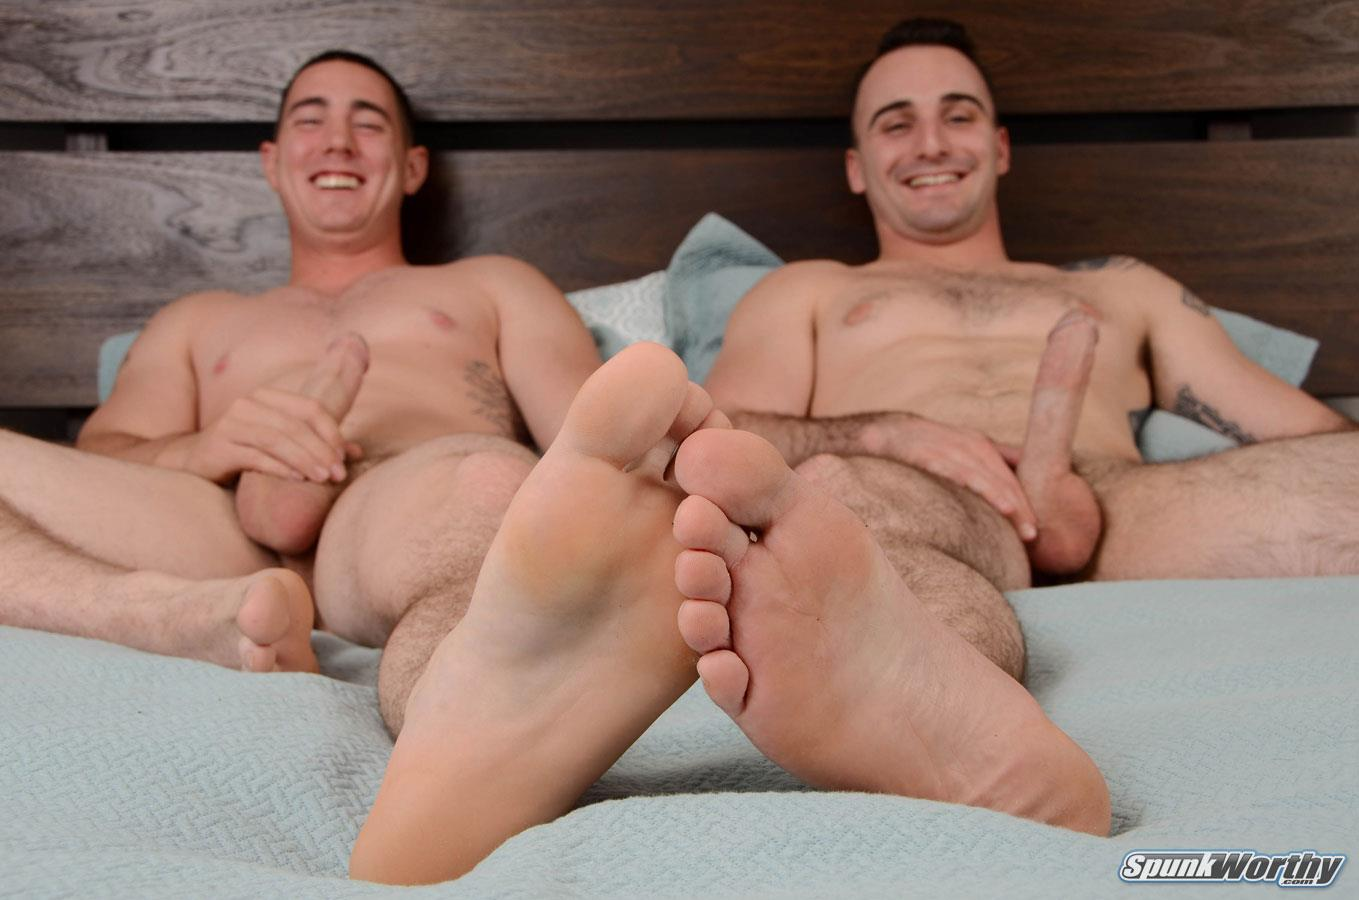 SpunkWorthy Damien and Tom Army Buddies Jerking Off Together Army Cock Amateur Gay Porn 07